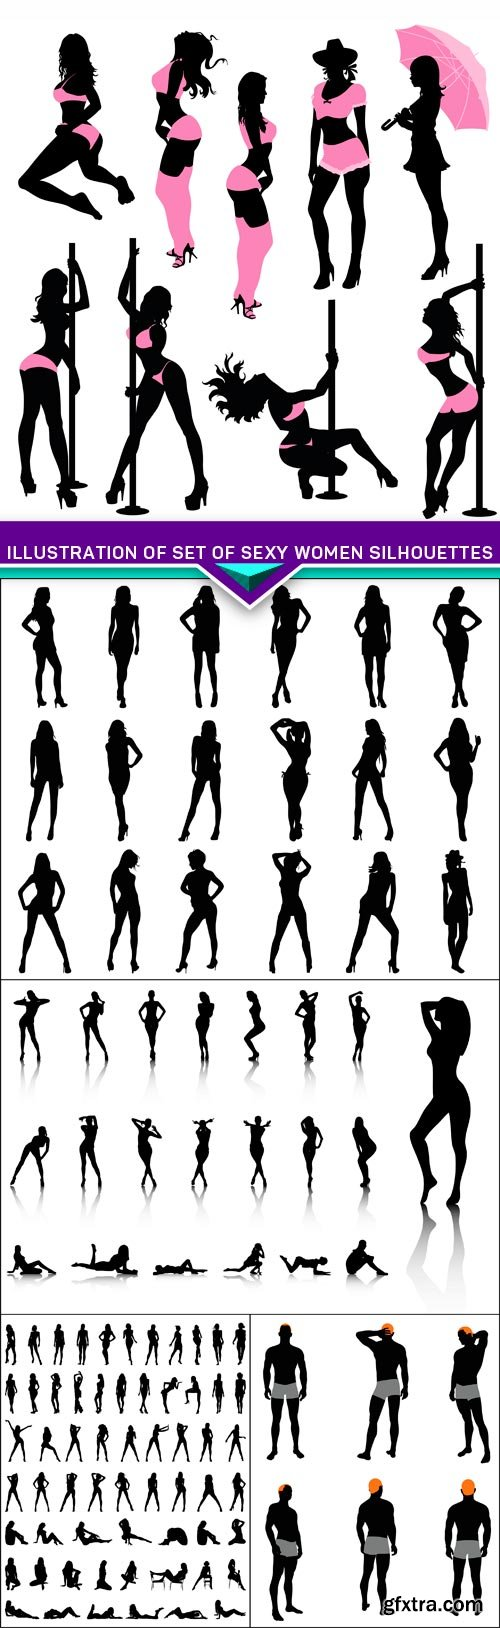 Illustration of Set of sexy women silhouettes 5X EPS